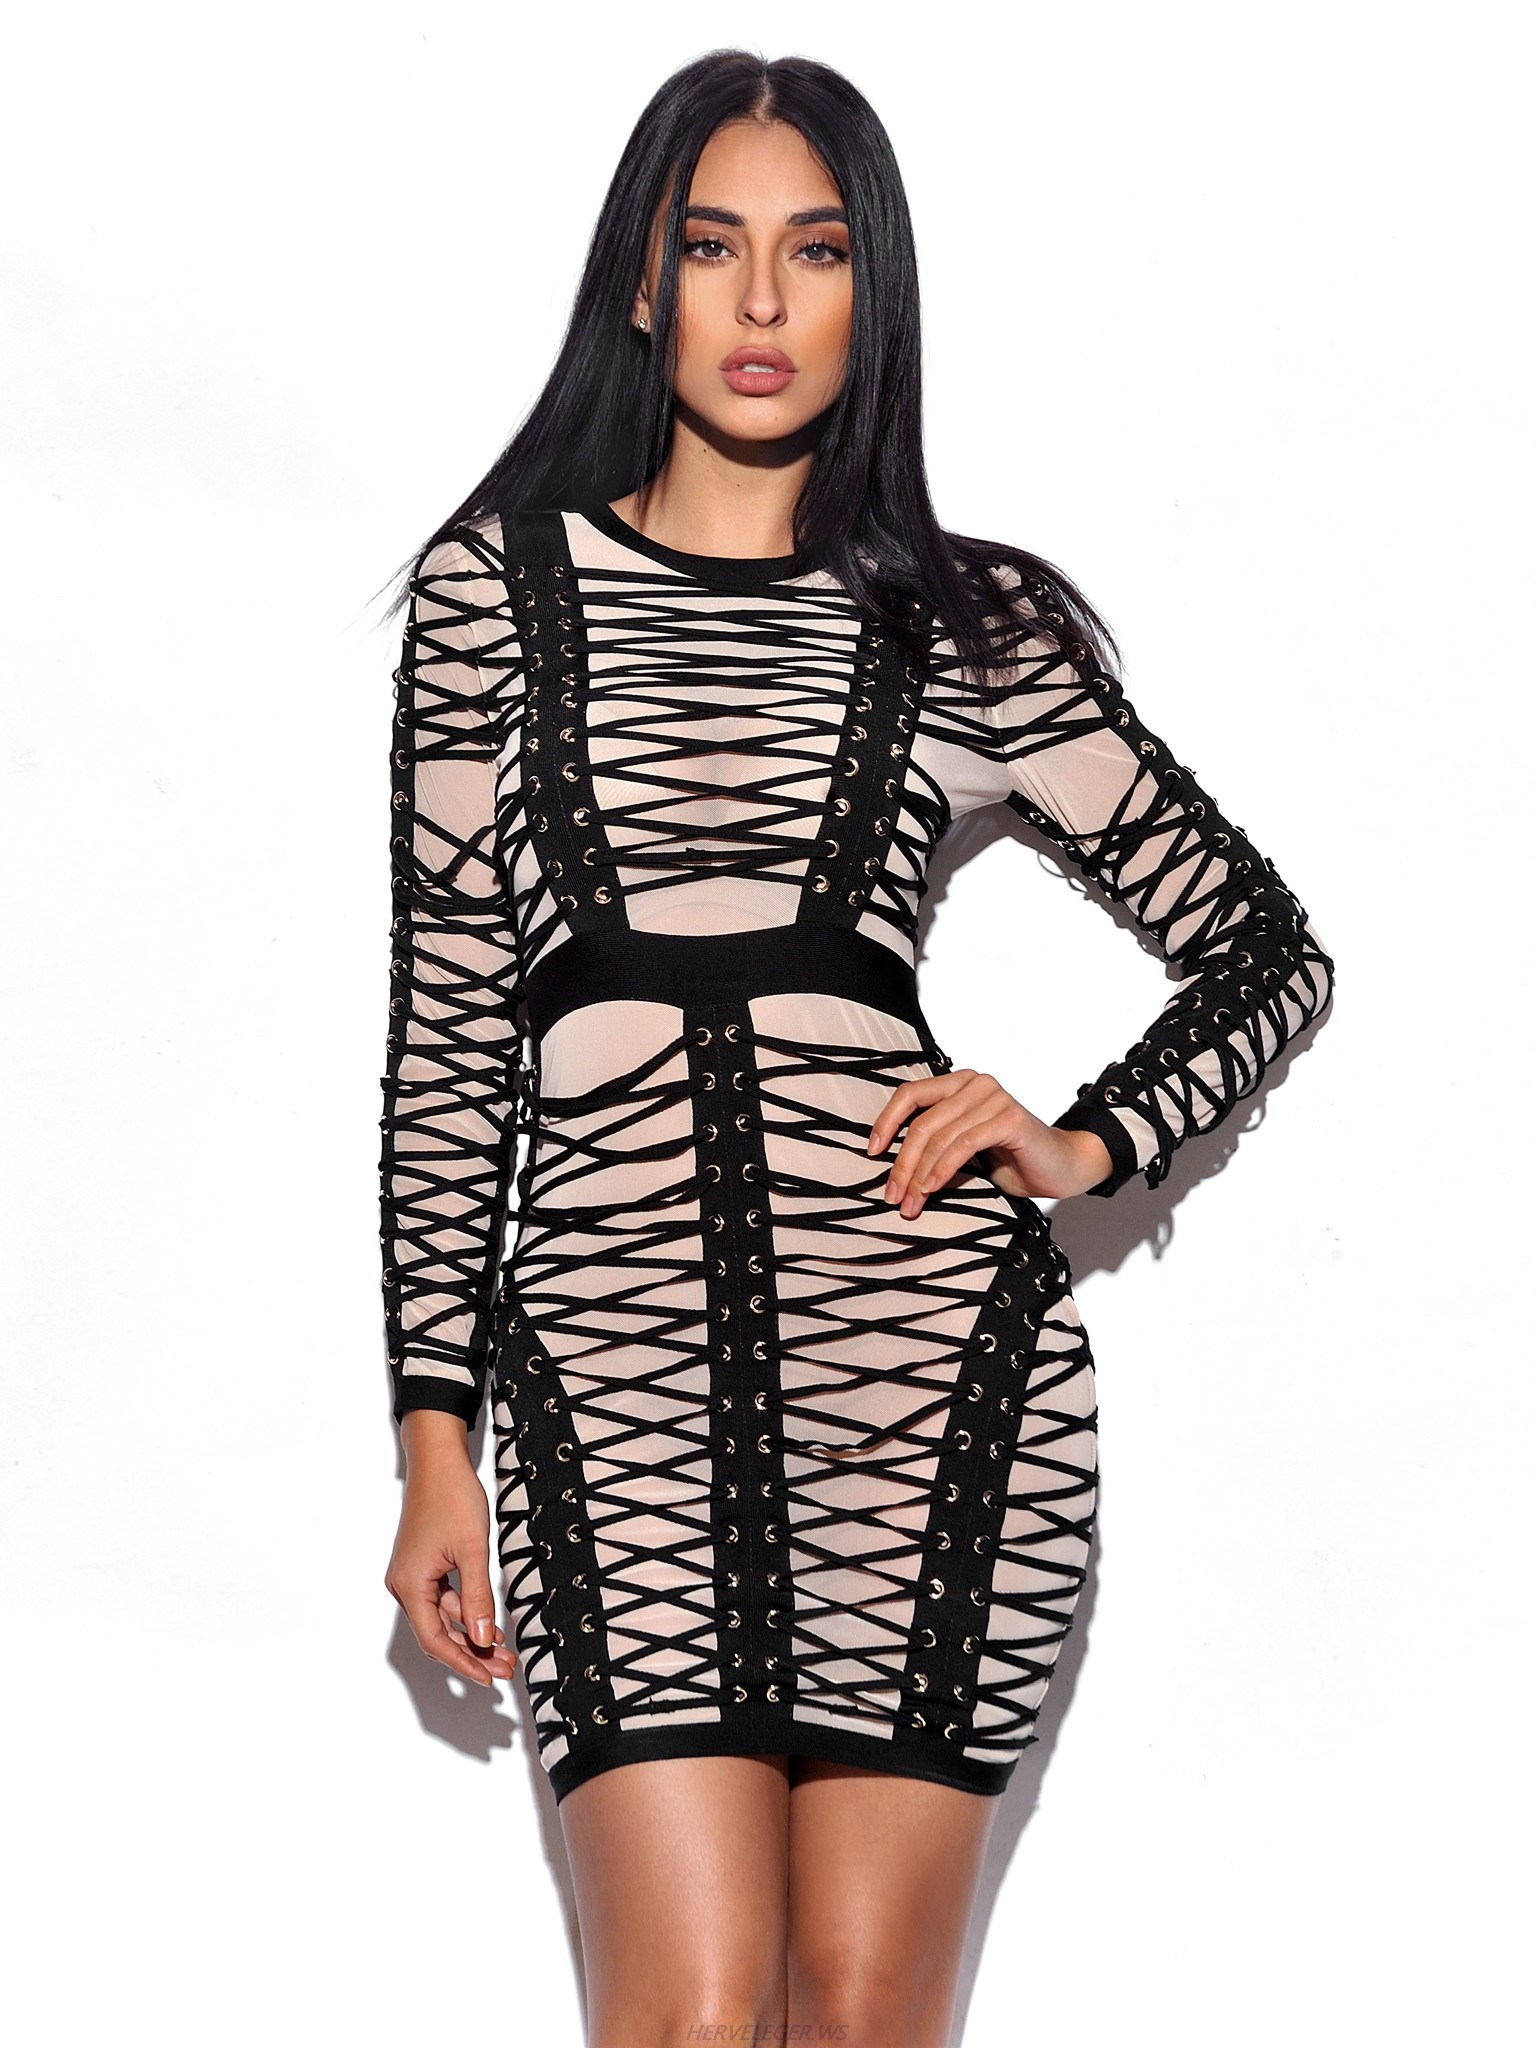 Herve Leger Black And White Lace Up Long Sleeve Dress